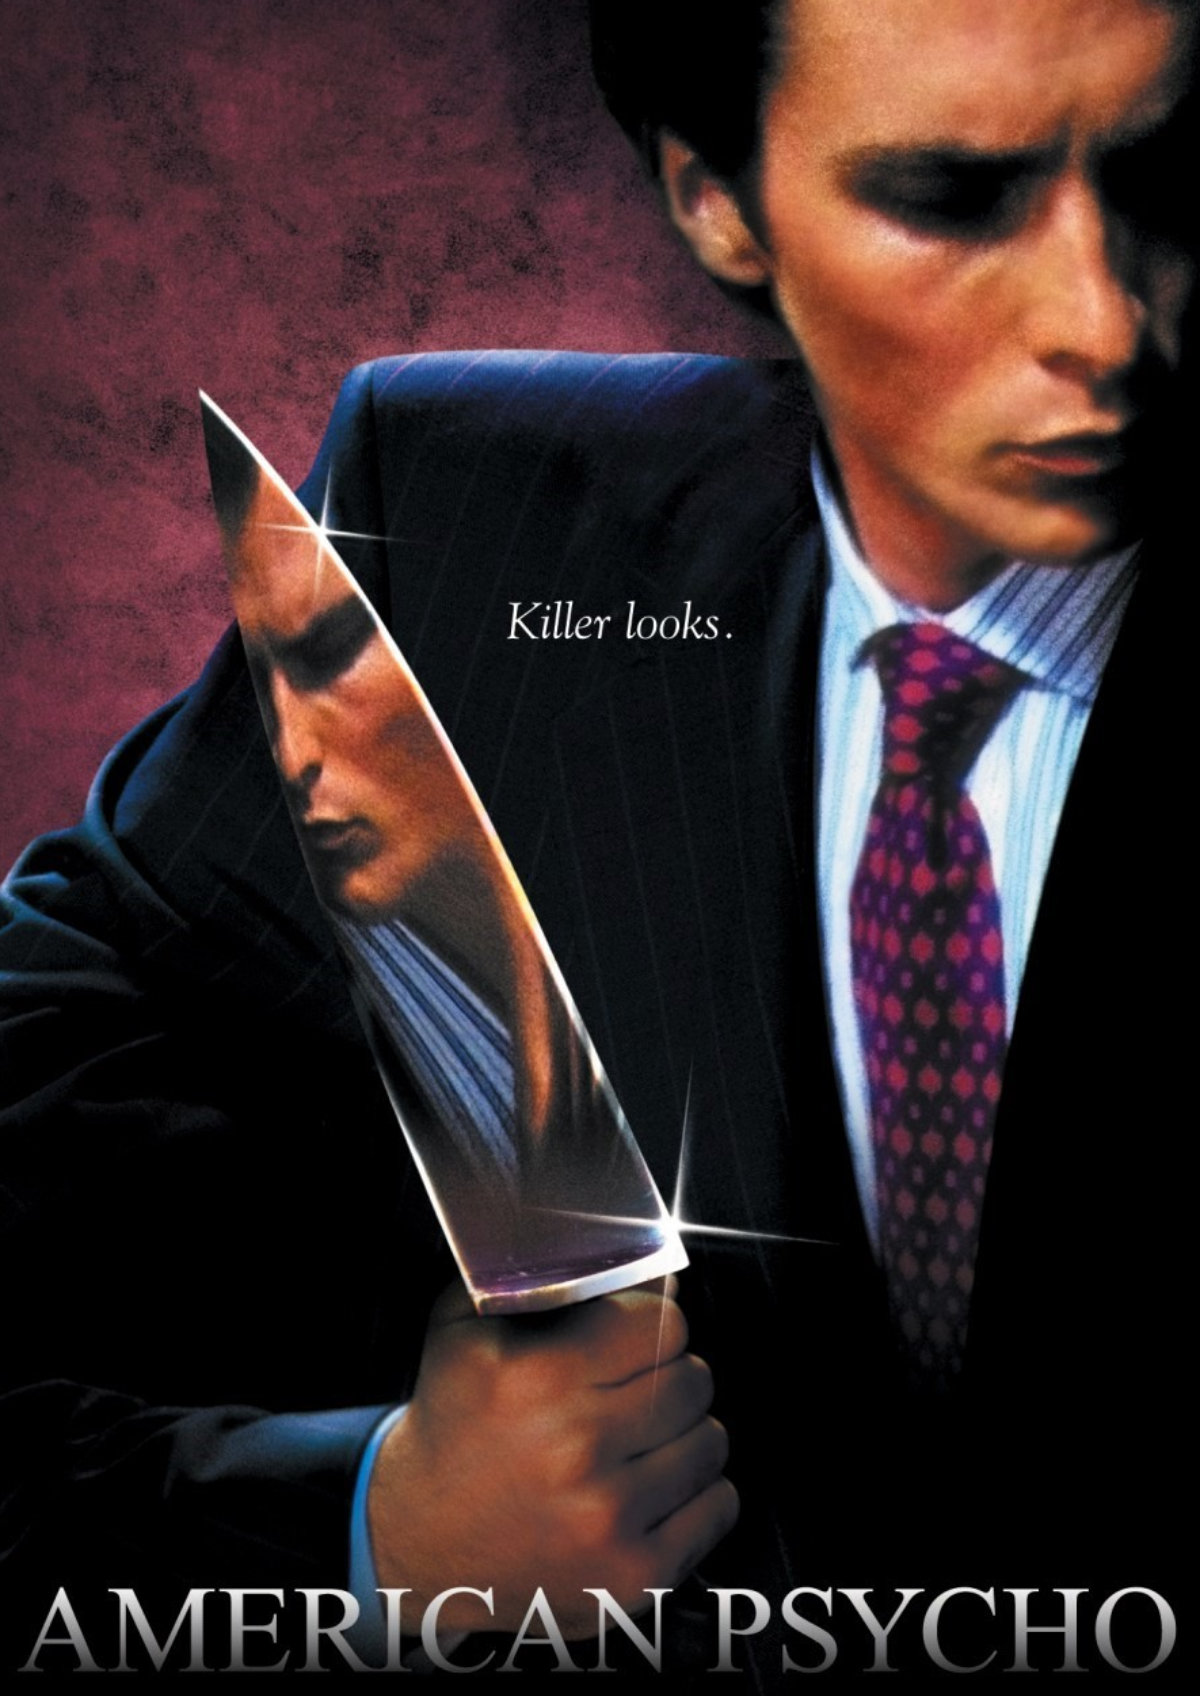 'American Psycho' movie poster